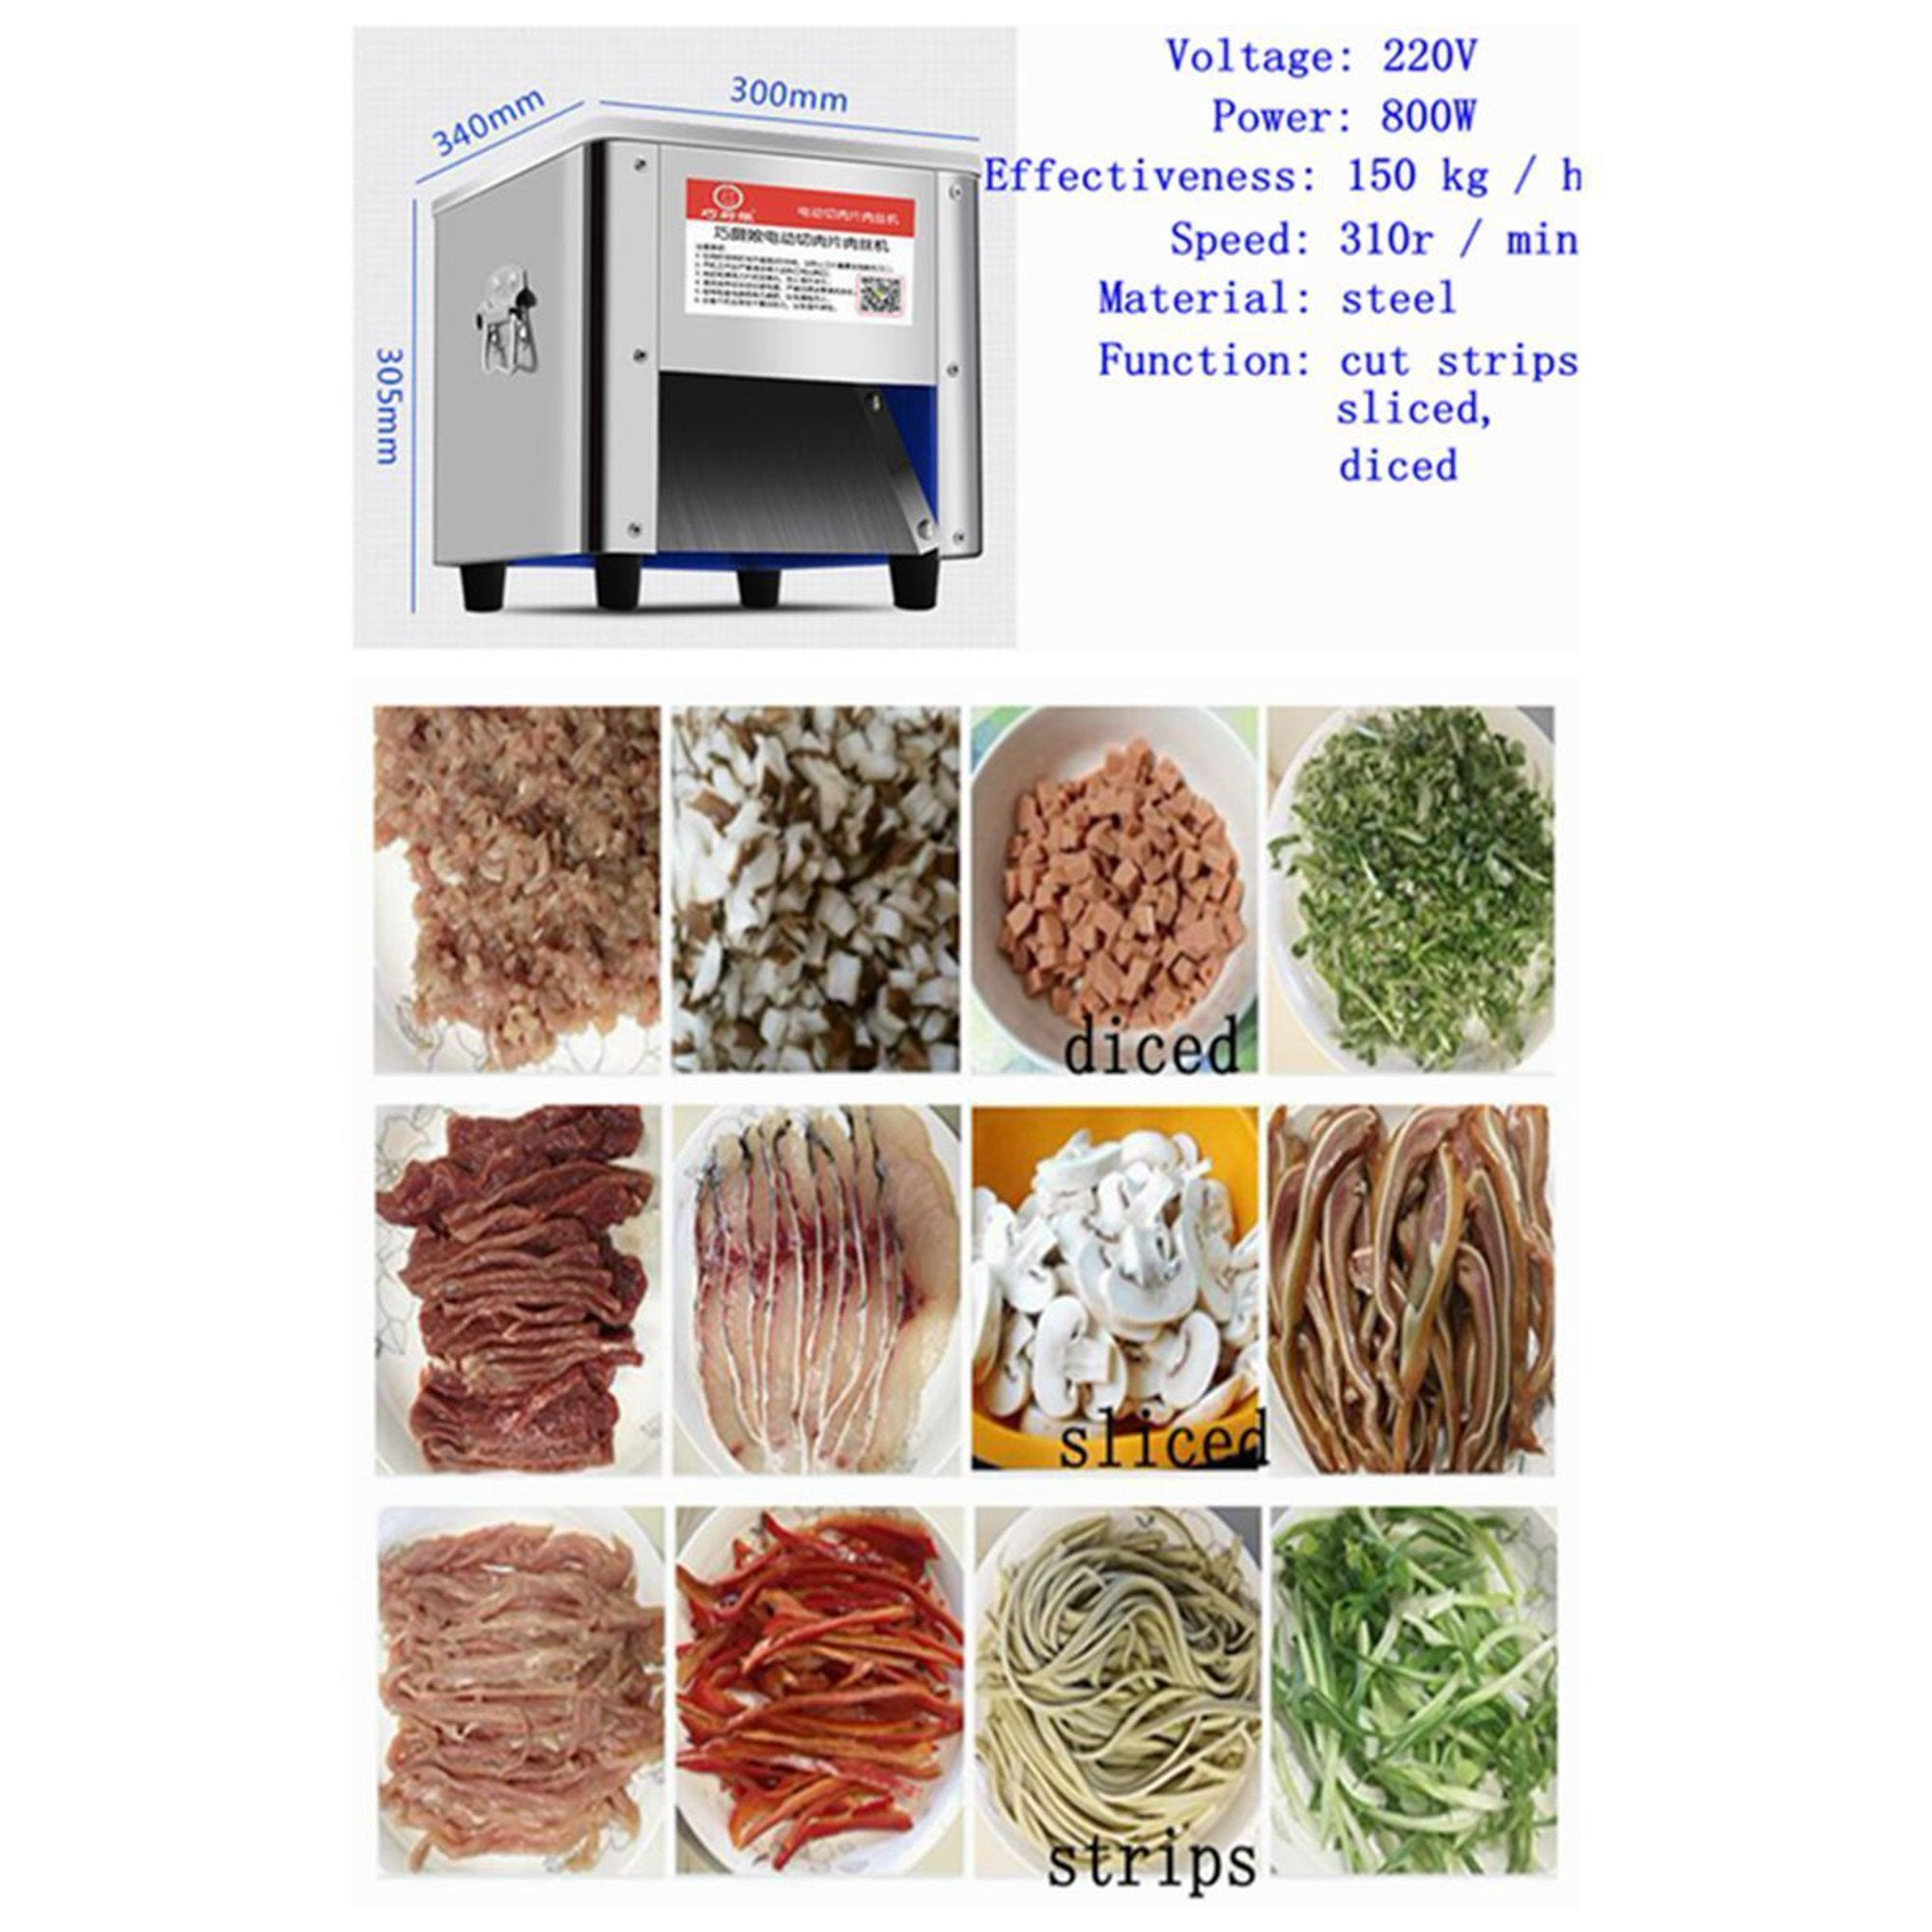 Commercial Meat Cutter Machine for Restaurant 3.5 mm Blade Automatic Slice Strip Cube Meat Cutting Machine 330 lbs/h Stainless Steel 220V